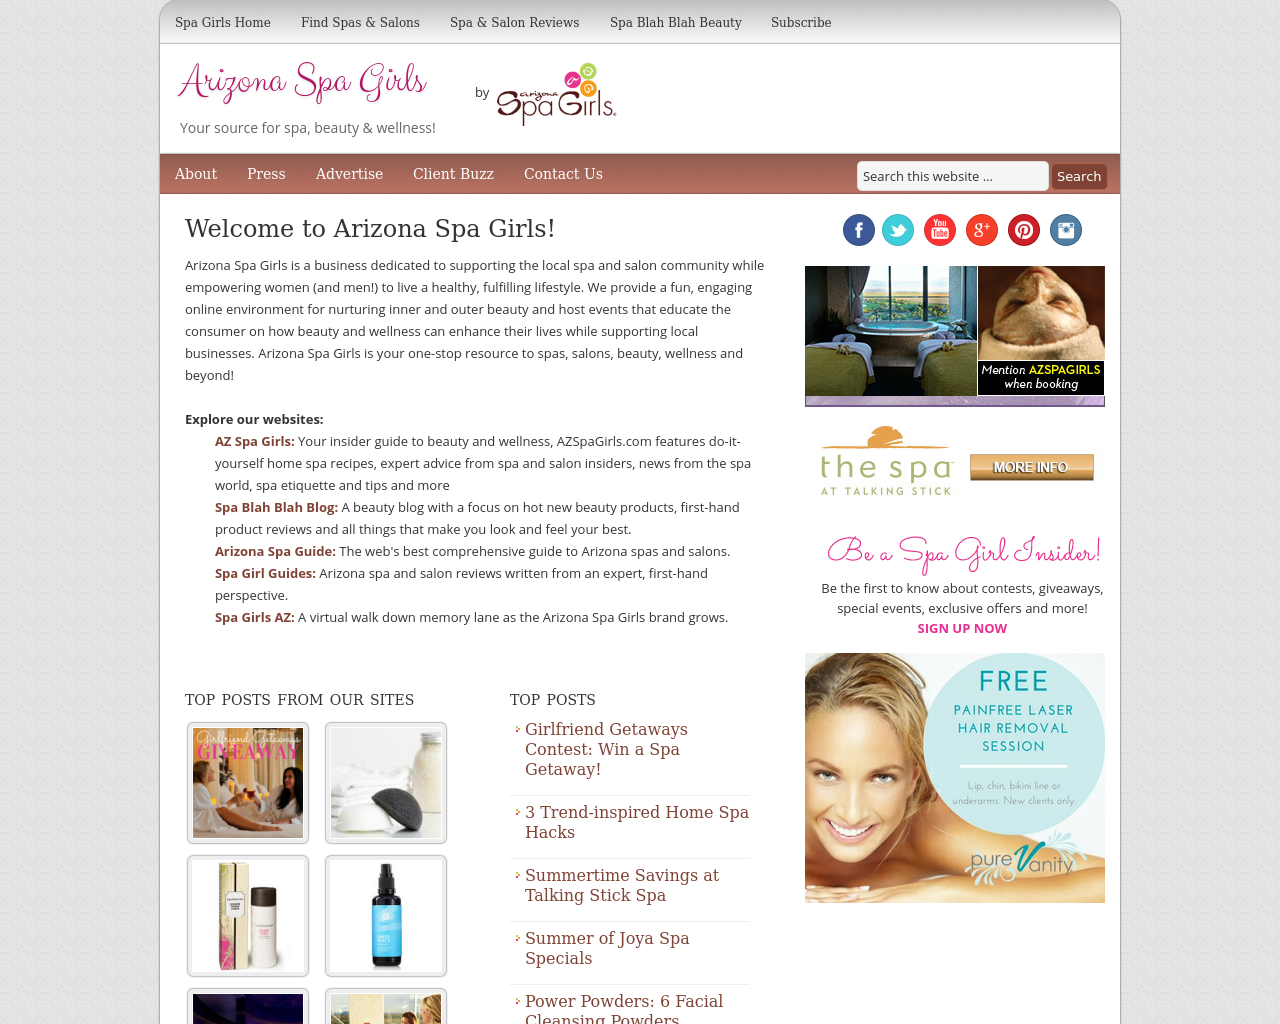 Arizona-Spa-Girls-Advertising-Reviews-Pricing